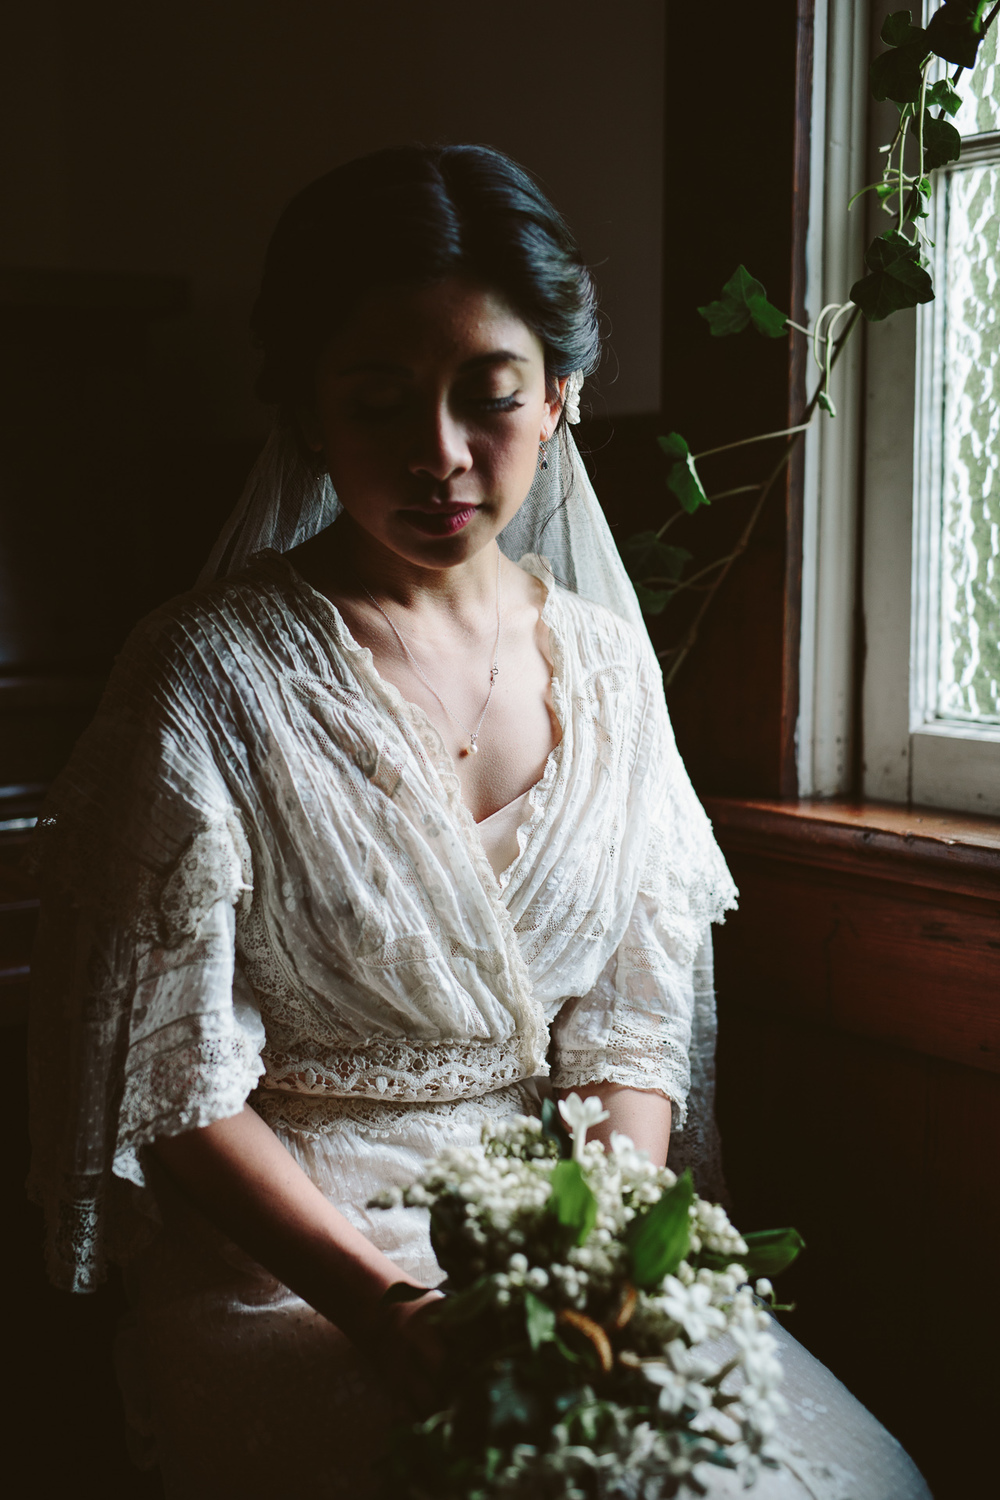 intimate-wedding-portland-oregon-jess-hunter-photography-0674.jpg